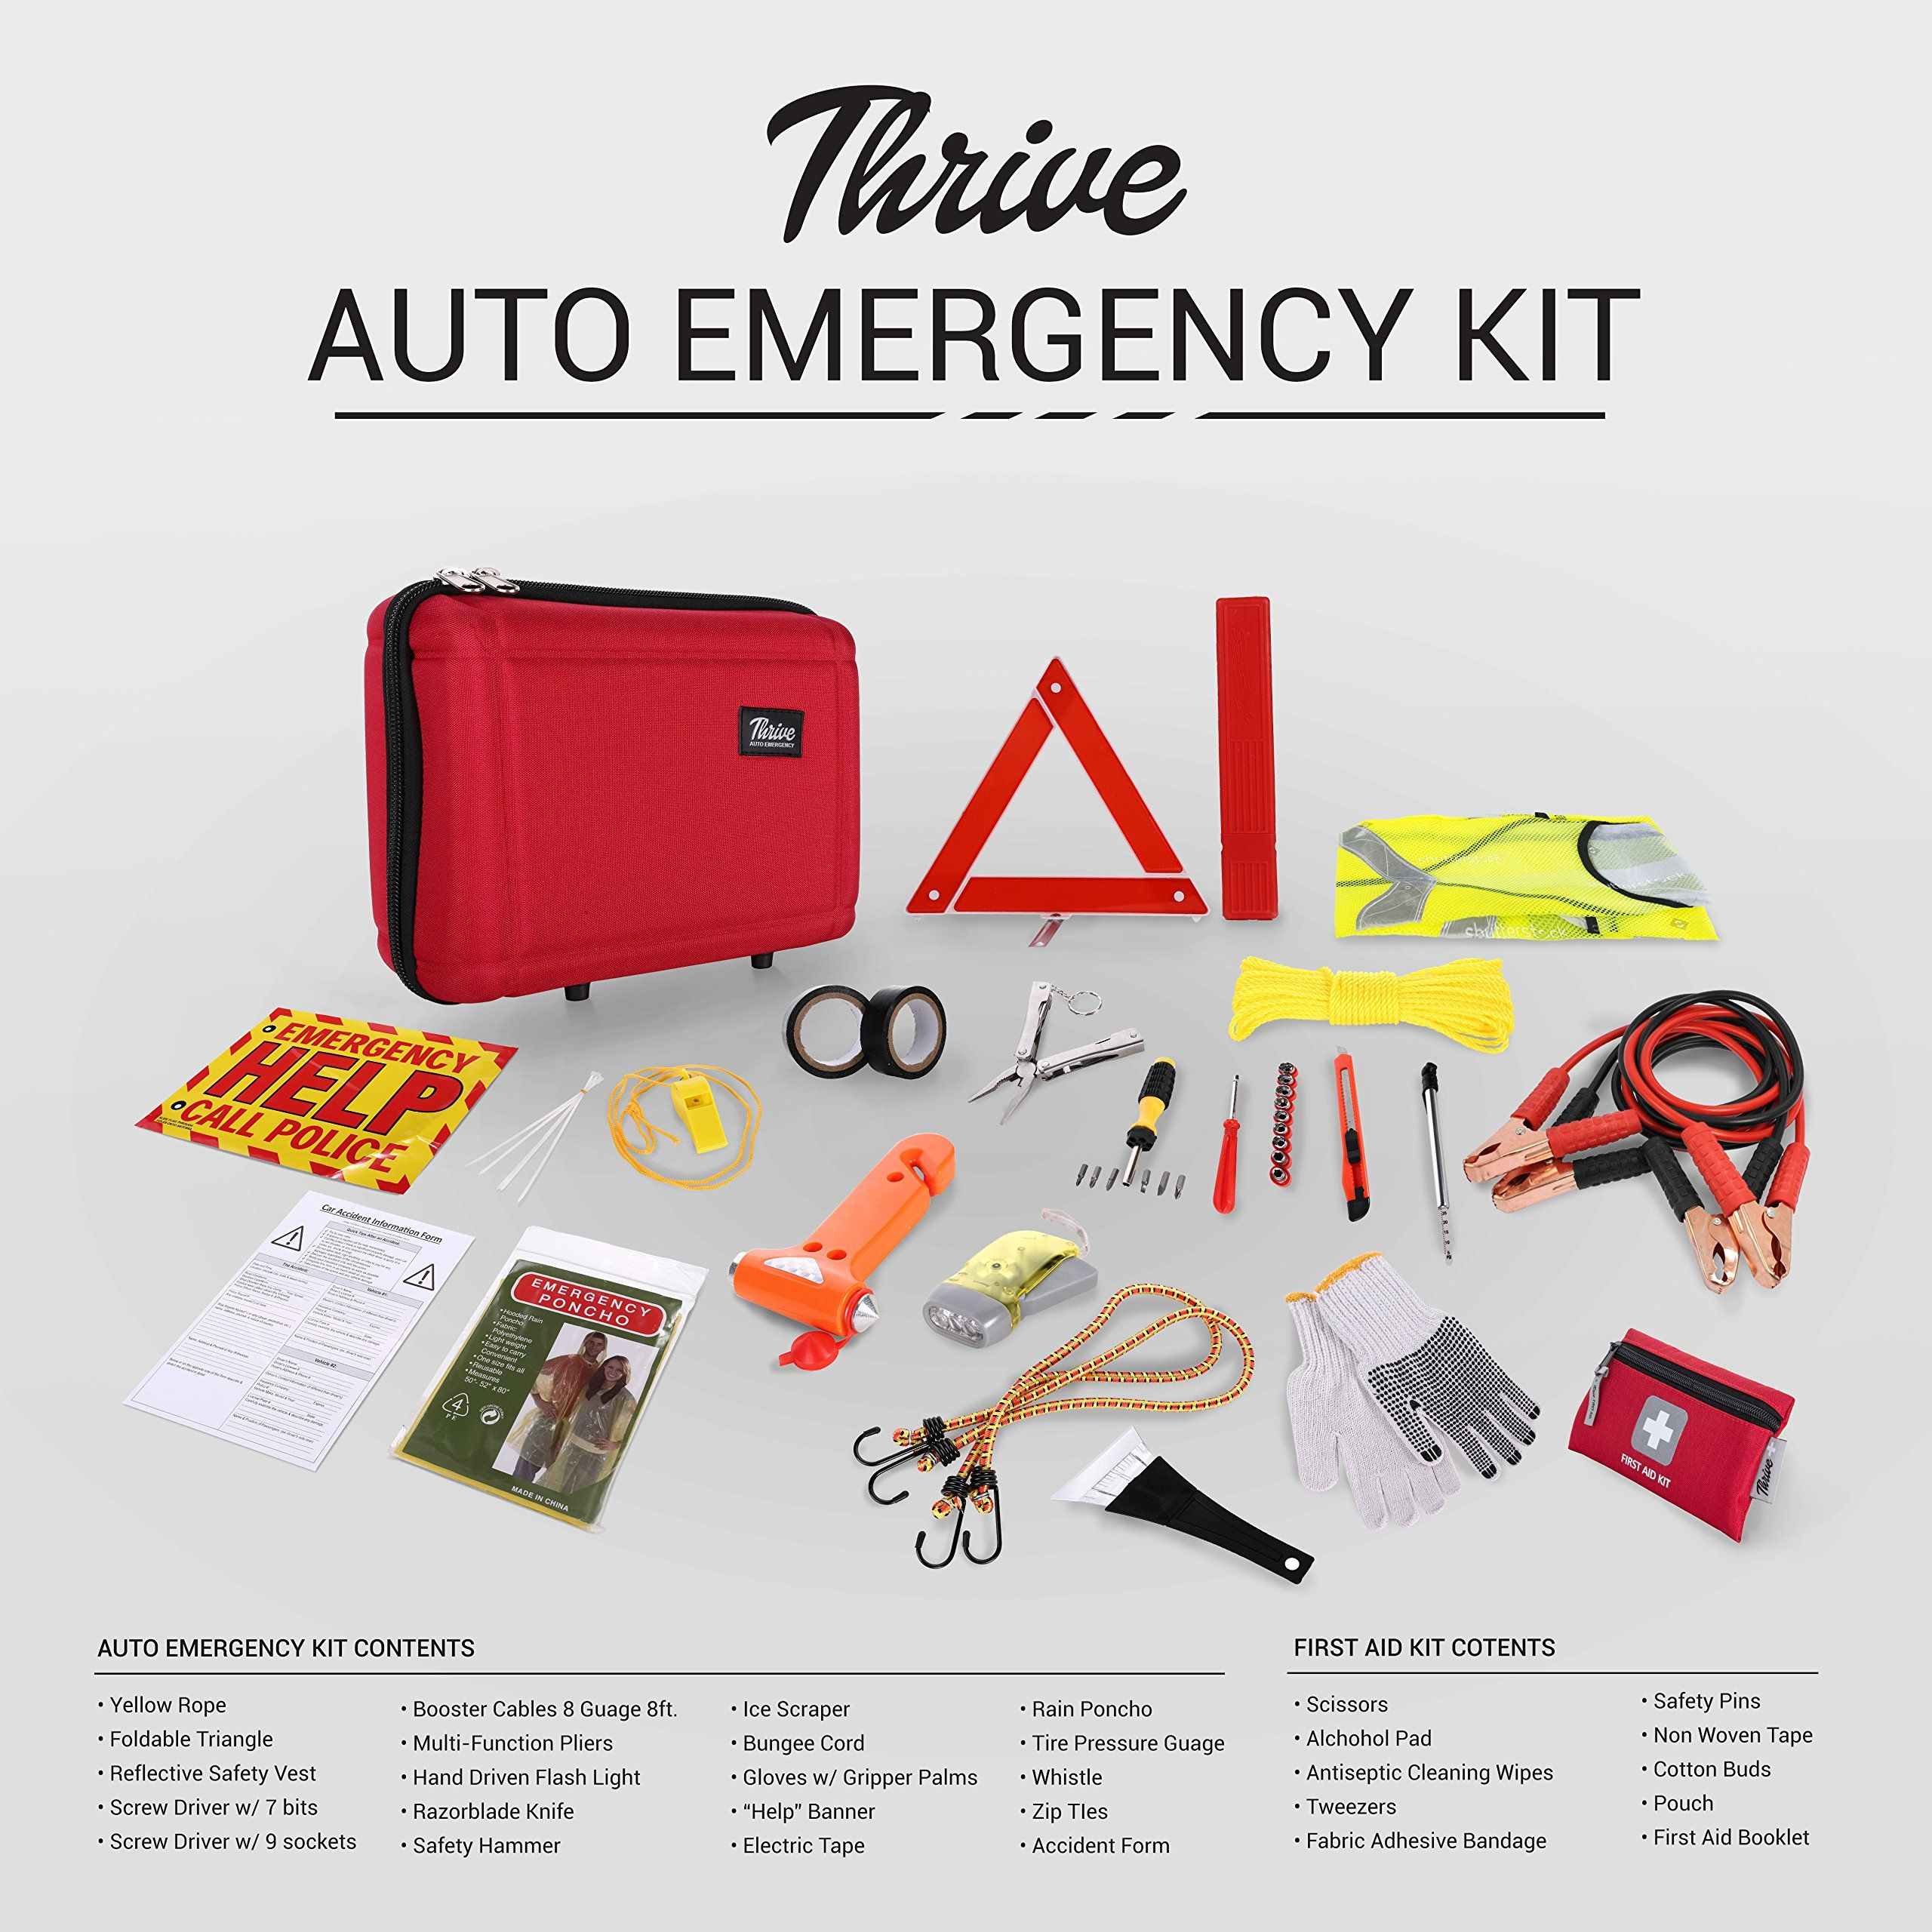 First Aid Case Thrive Roadside Assistance Auto Emergency Kit Contains...